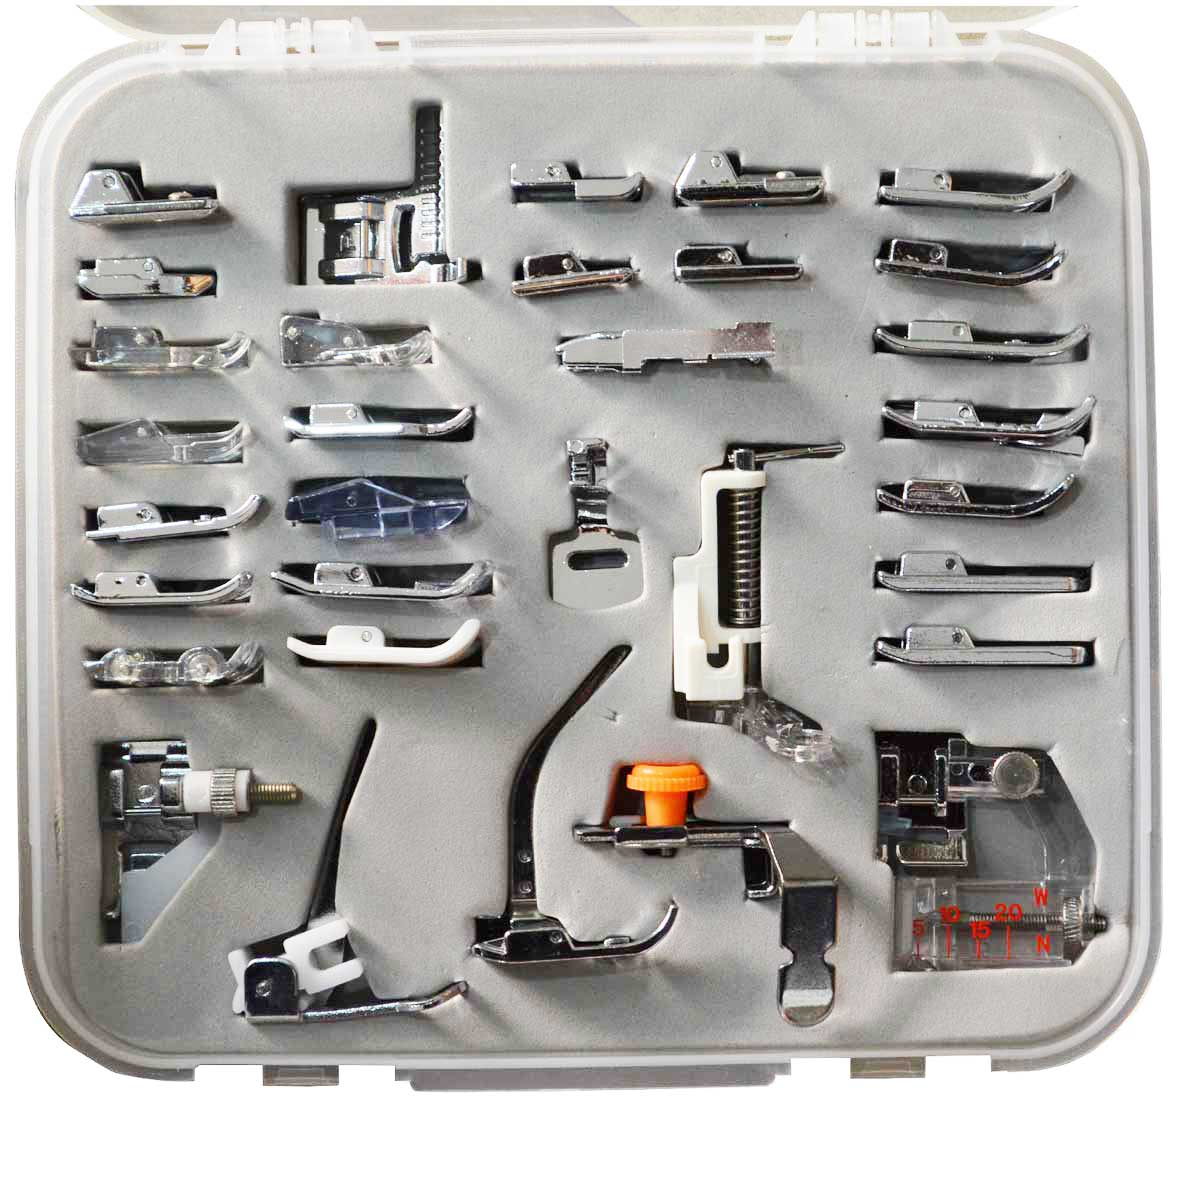 Janome etc. 32 Domestic Sewing Machine Presser Foot Set w// Box for Brother